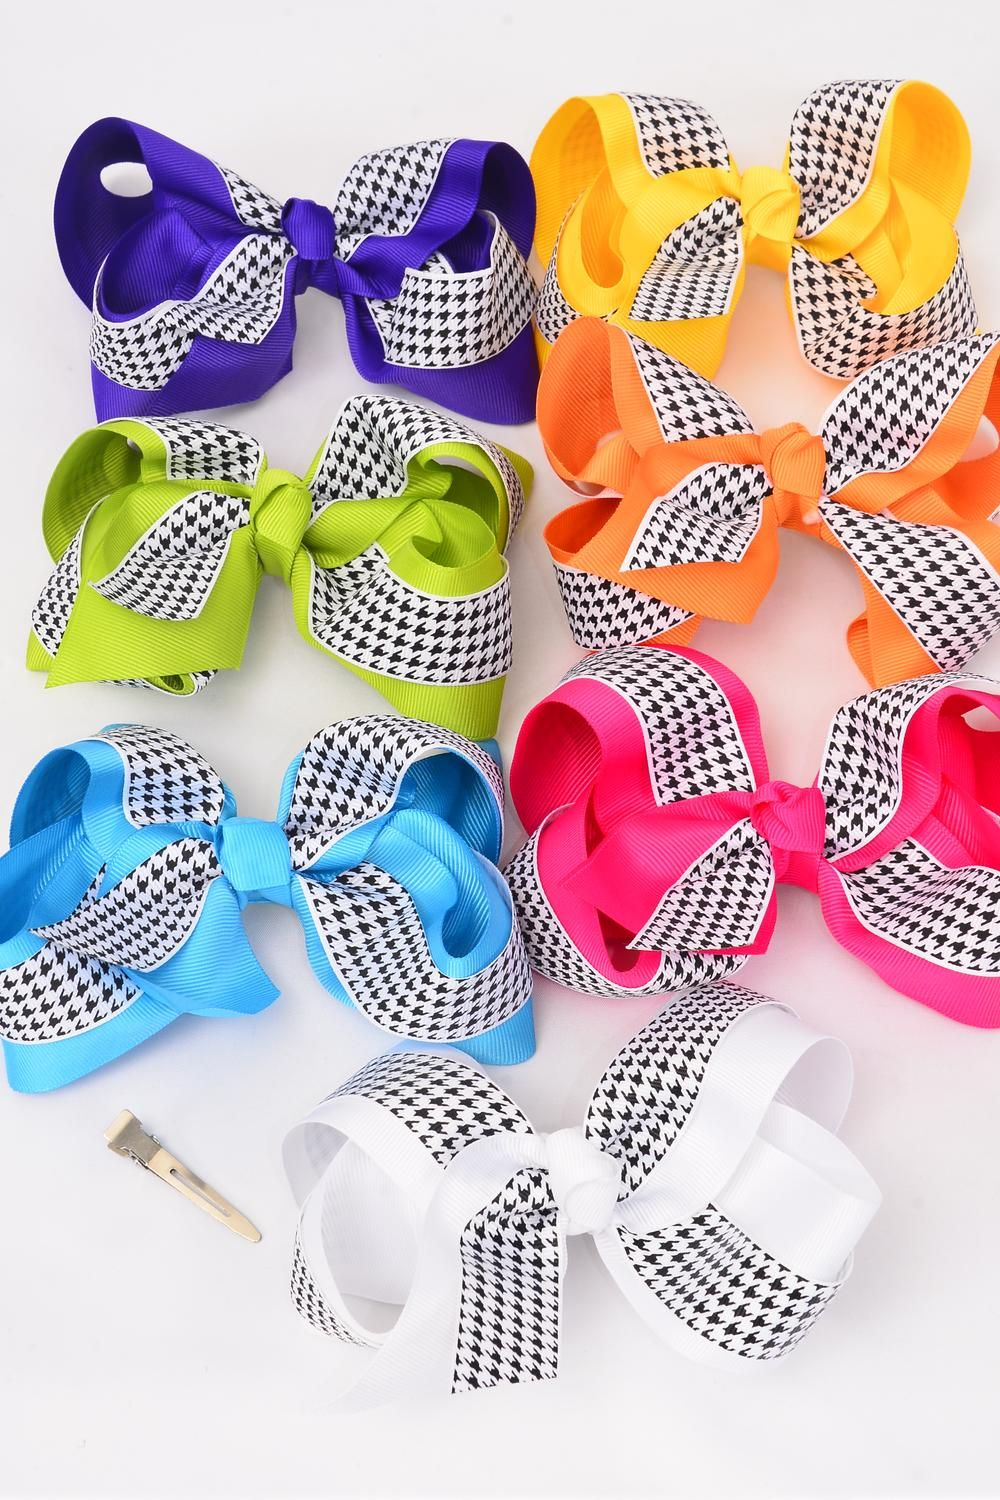 "Hair Bow Jumbo Houndtooth Double Layered Grosgrain Bow-tie Citrus/DZ **Citrus** Size-6""x 5"" Wide,Alligator Clip,2 Fuchsia,2 Blue,2 Yellow,2 Purple,2 White,1 Lime,1 Orange,7 Color Mix,Clip Strip & UPC Code"